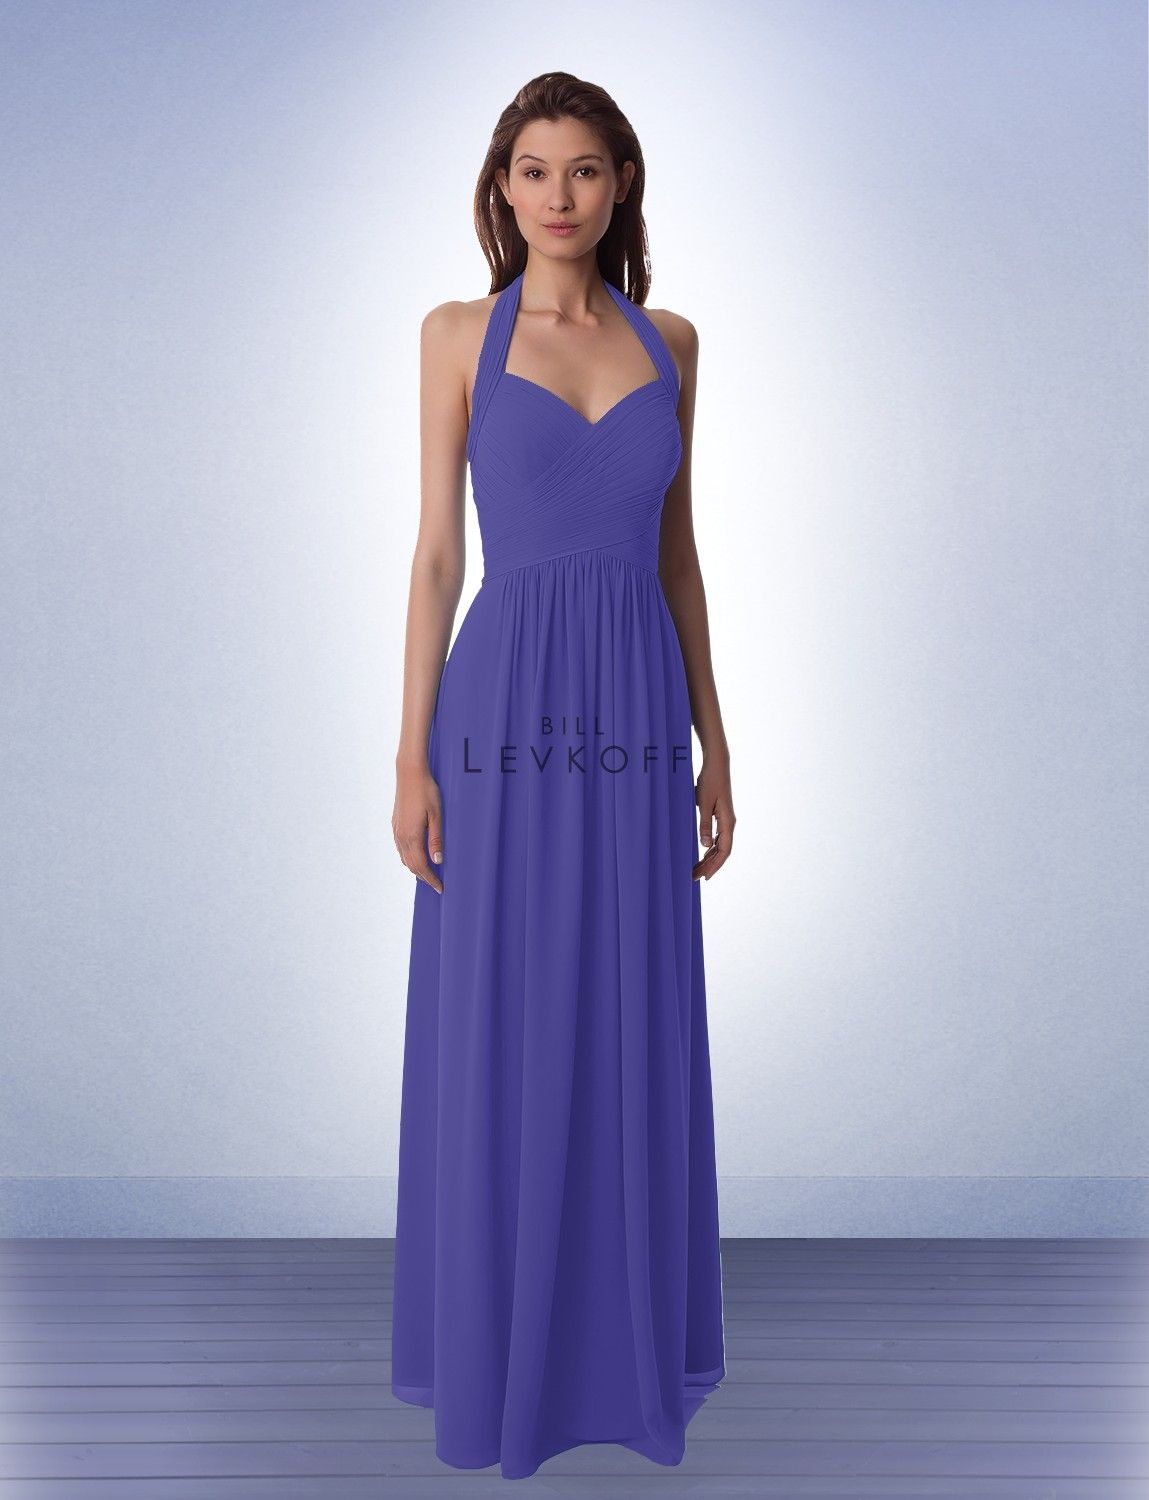 Wedding dresses springfield mo  Regency Bridesmaid Dress Style   Bridesmaid Dresses by Bill